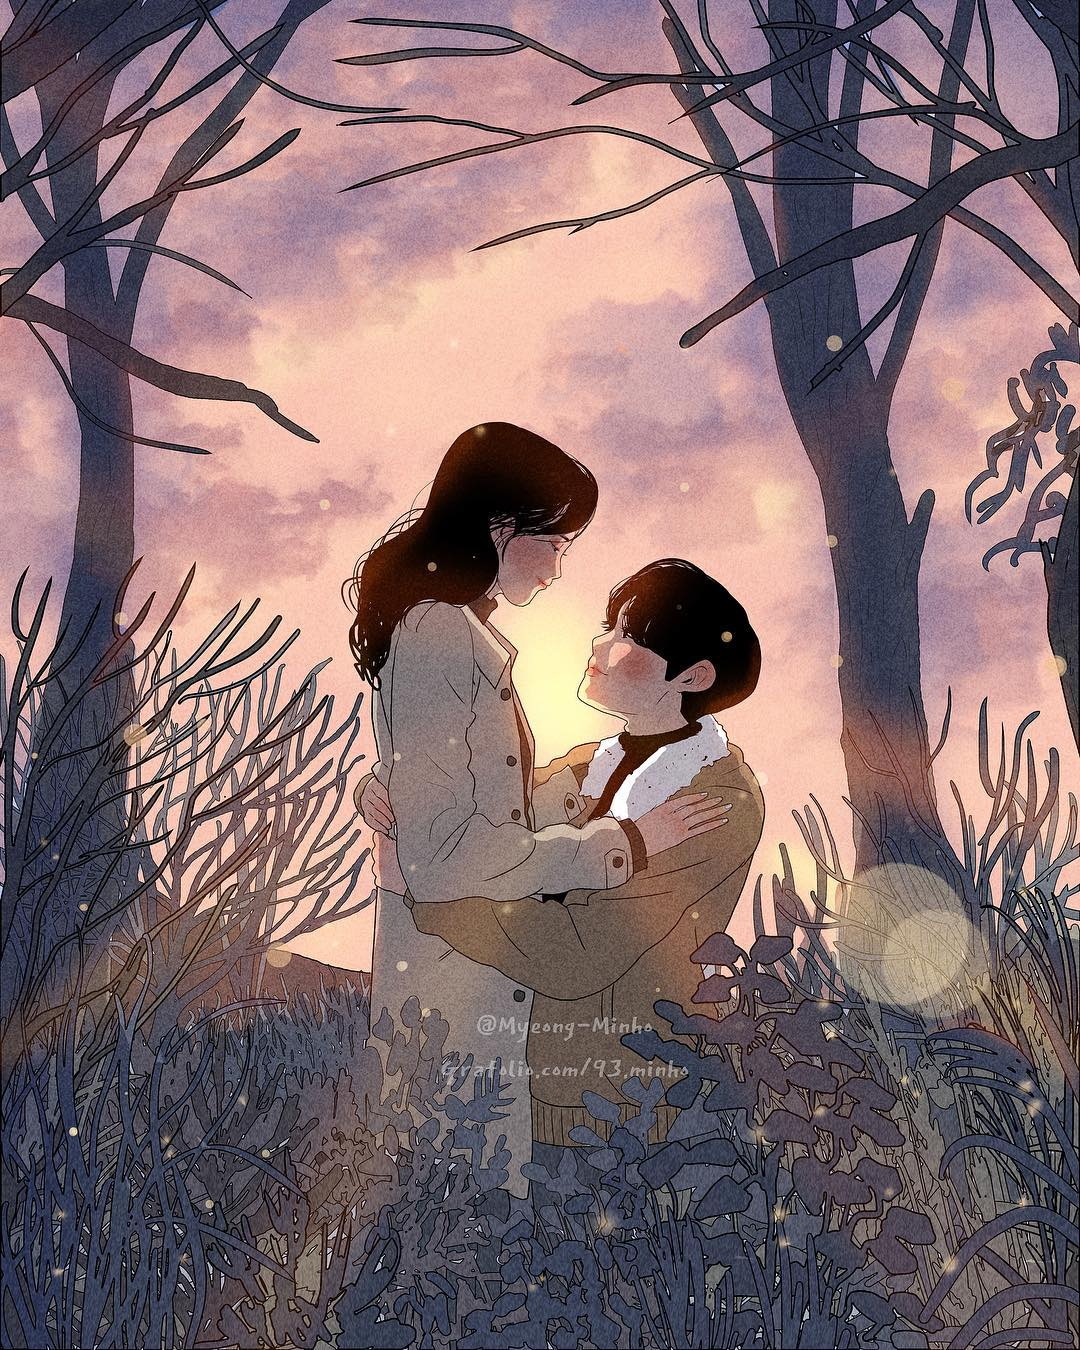 Heart-Warming Illustrations Depict The Romantic Moments Of A Happy Couple